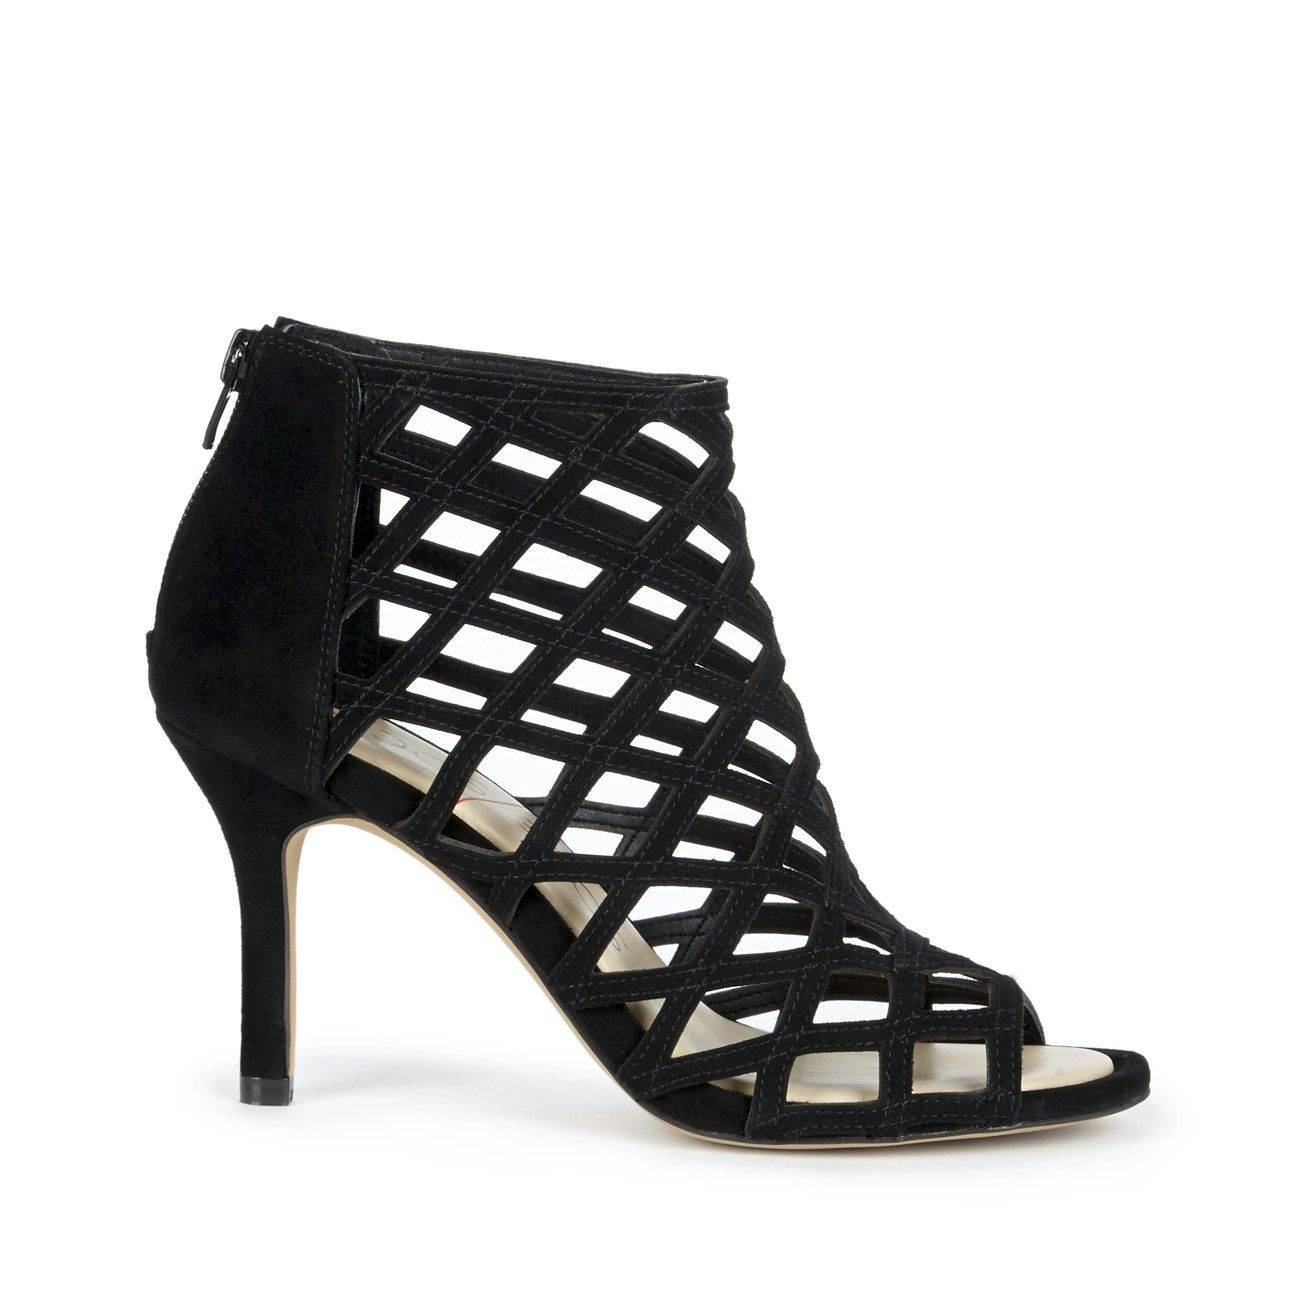 Black Mid Society Portia Heel Sole HeelsSandalsShoes QrEodxeCBW